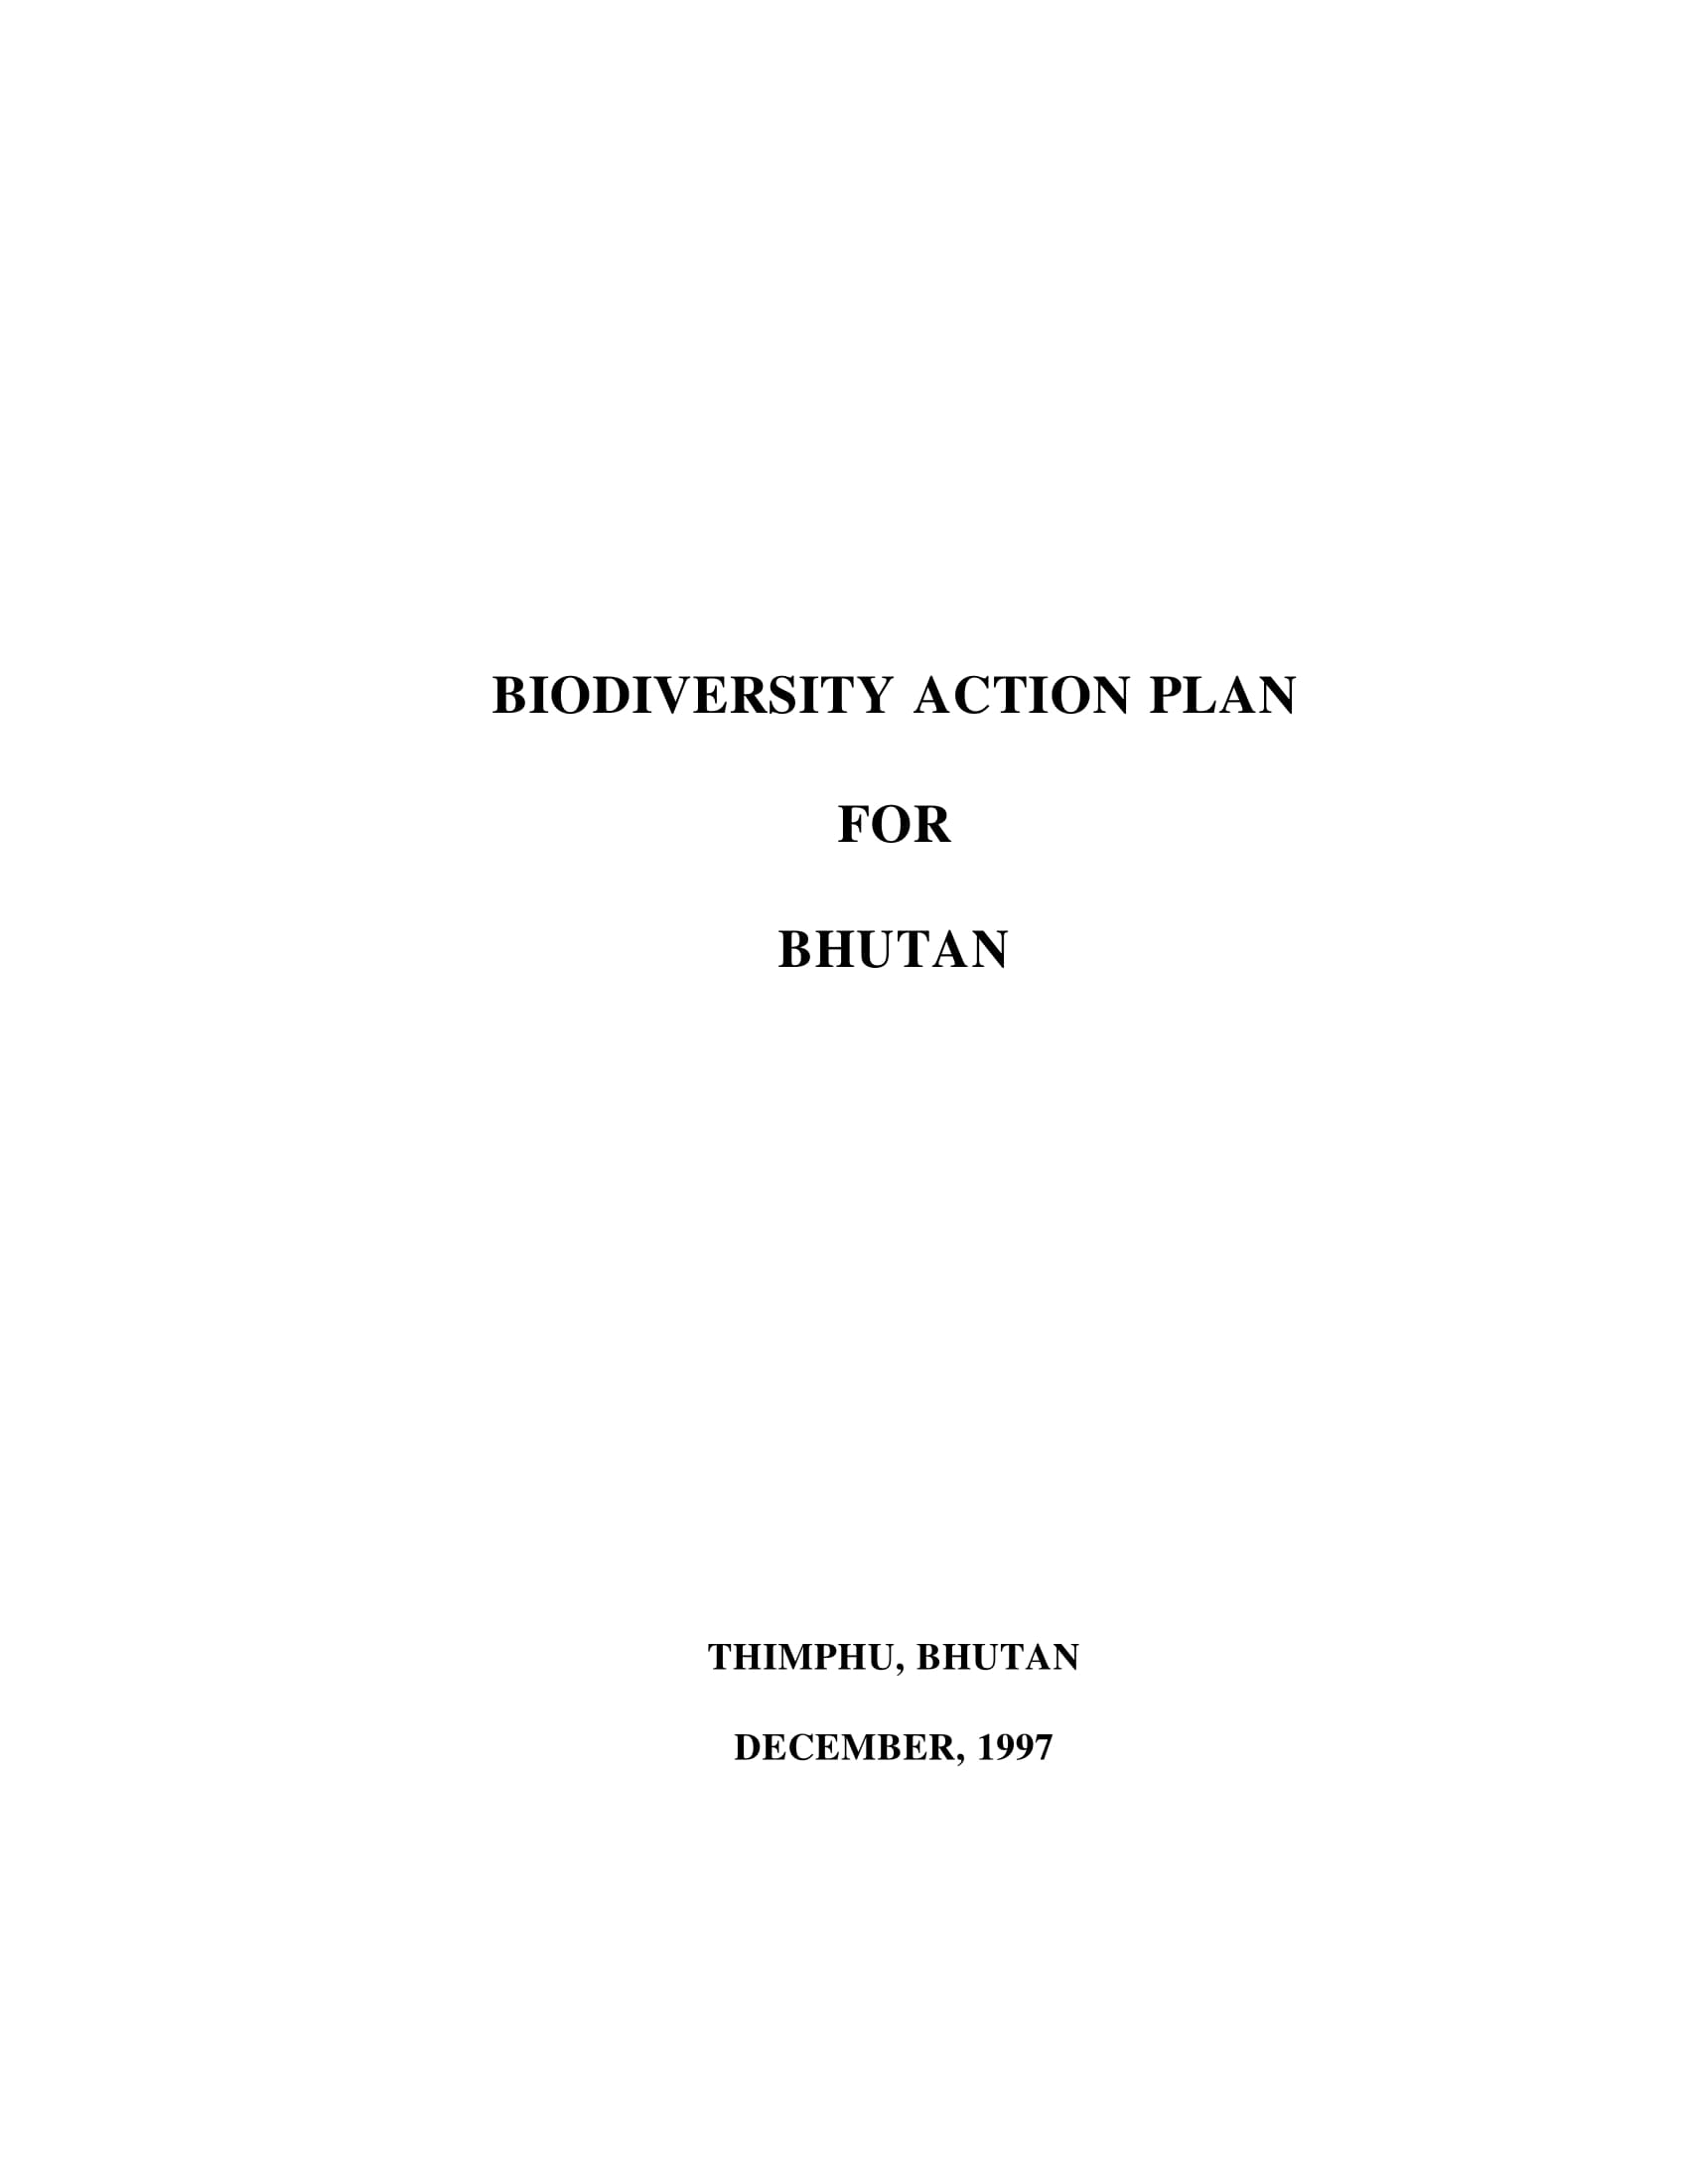 detailed biodiversity action plan example 001